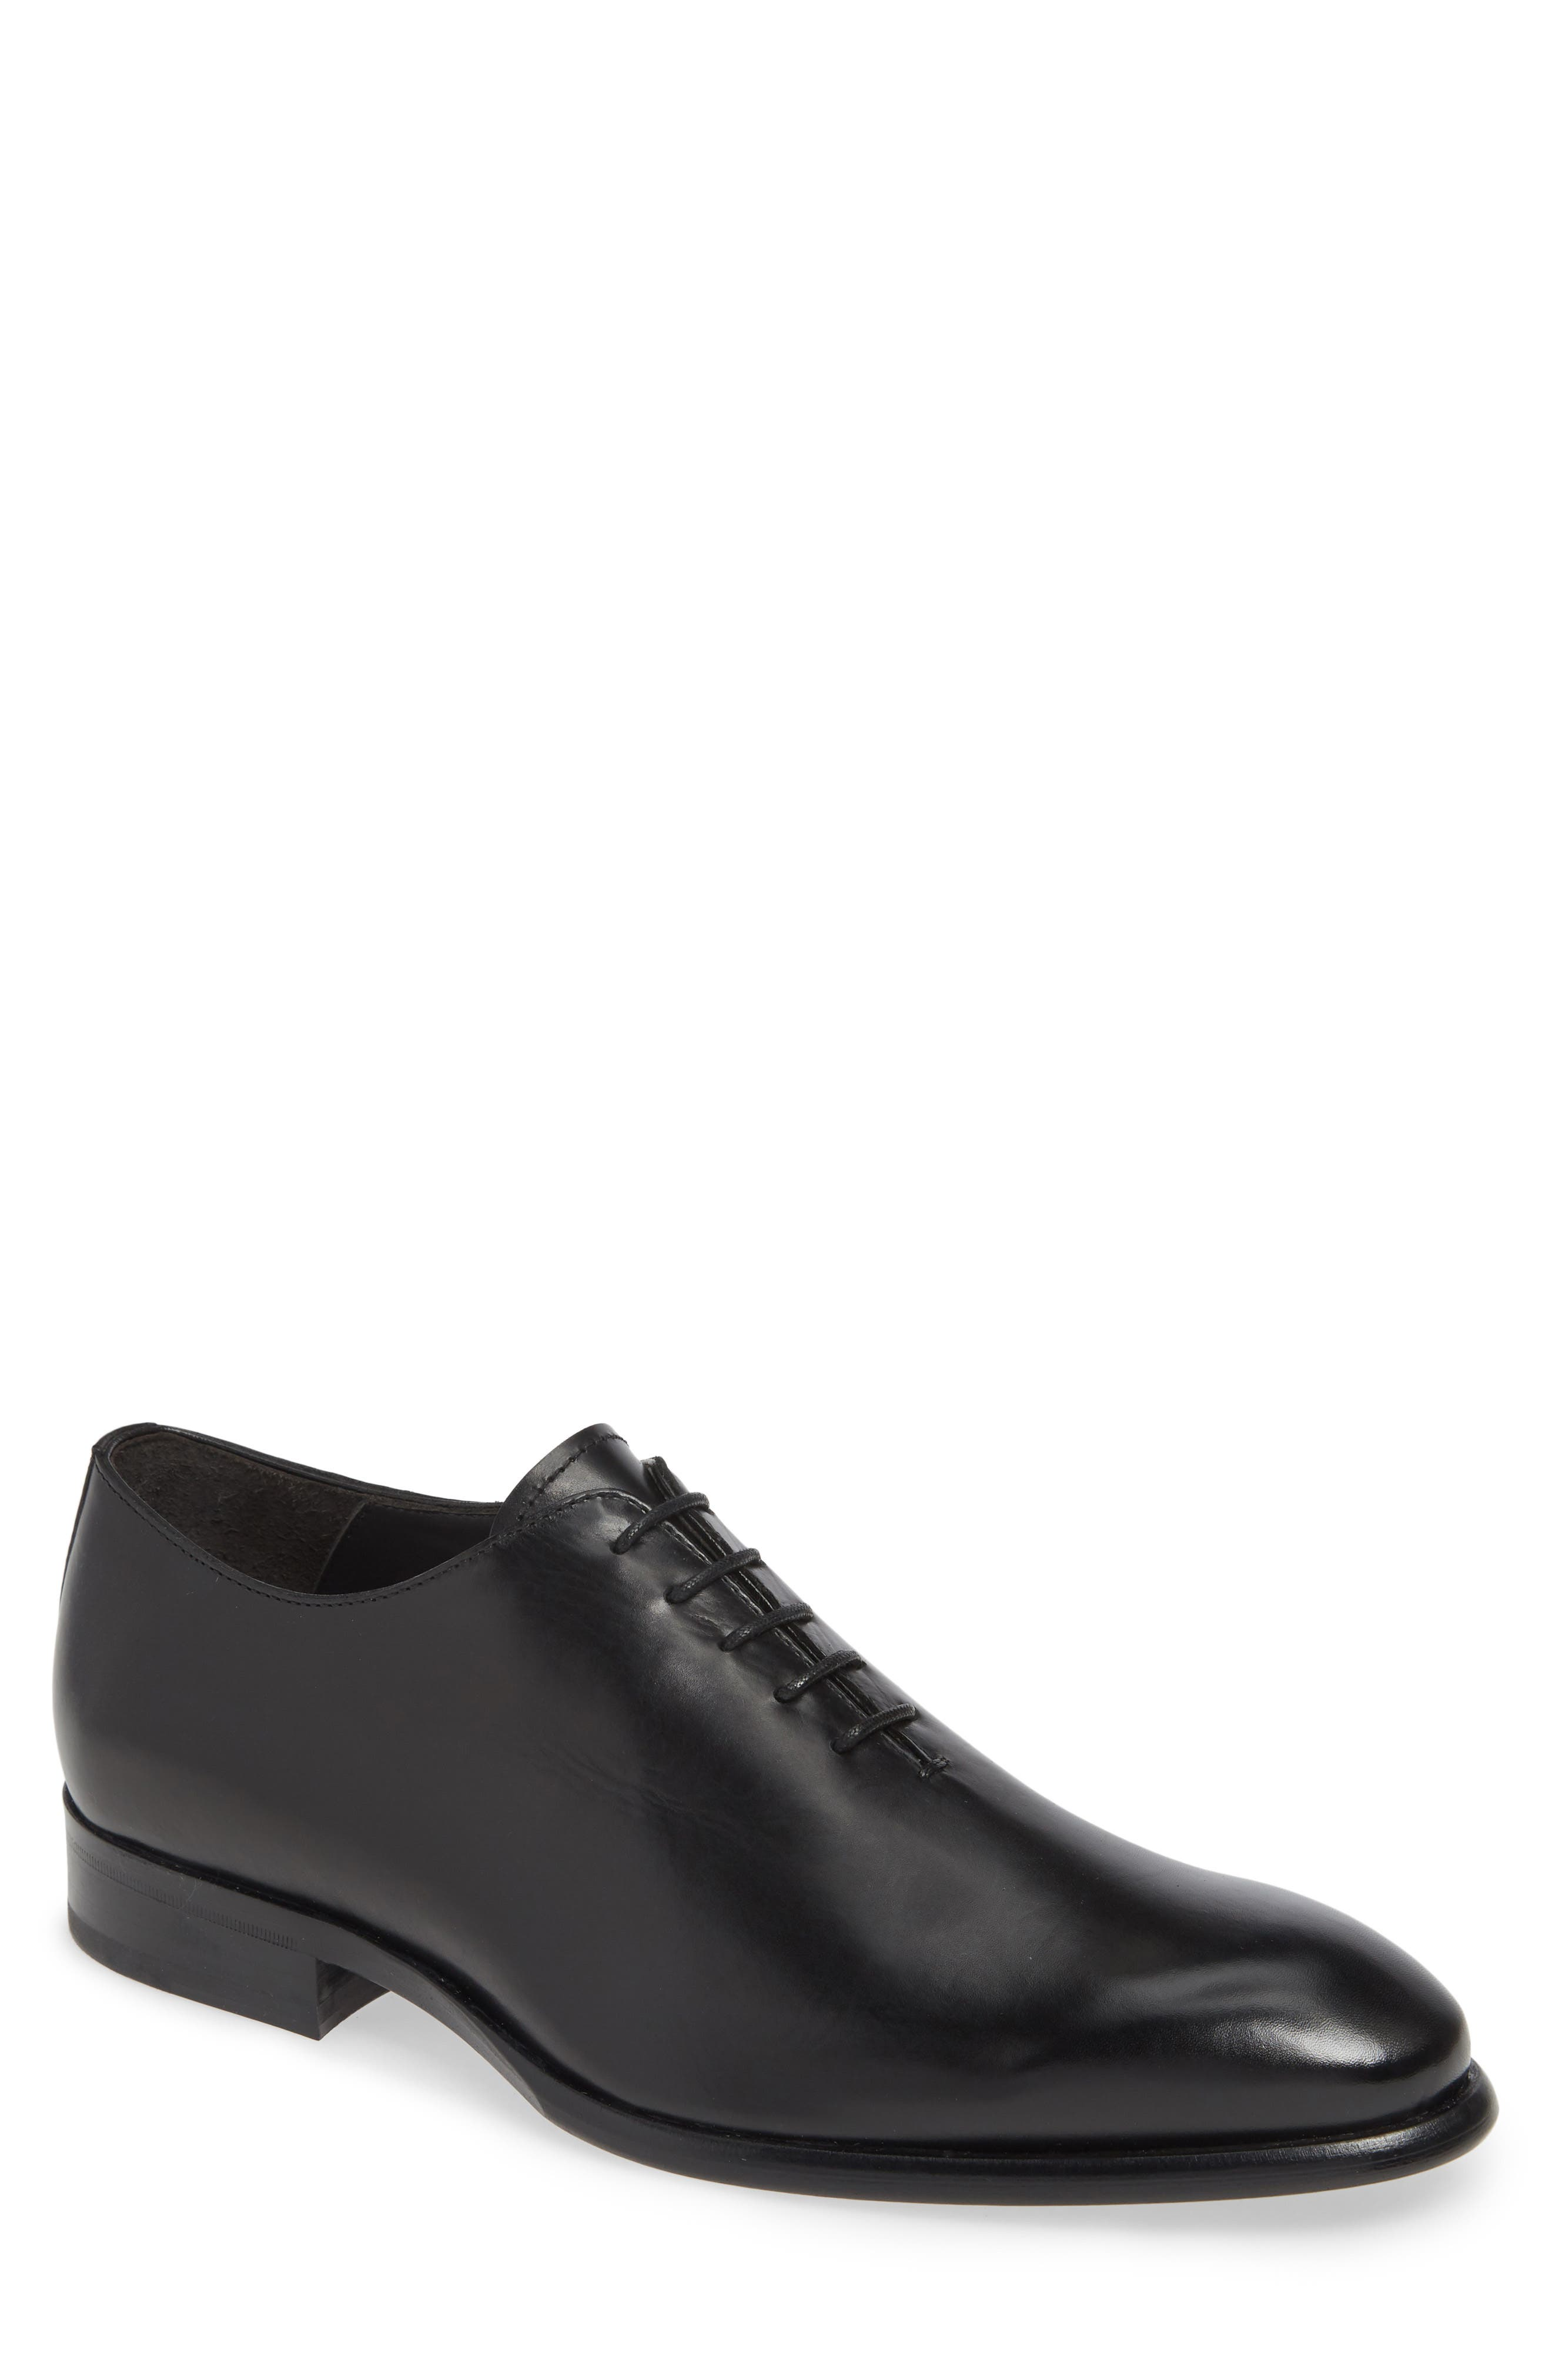 To Boot New York Forte Wholecut Oxford, Black